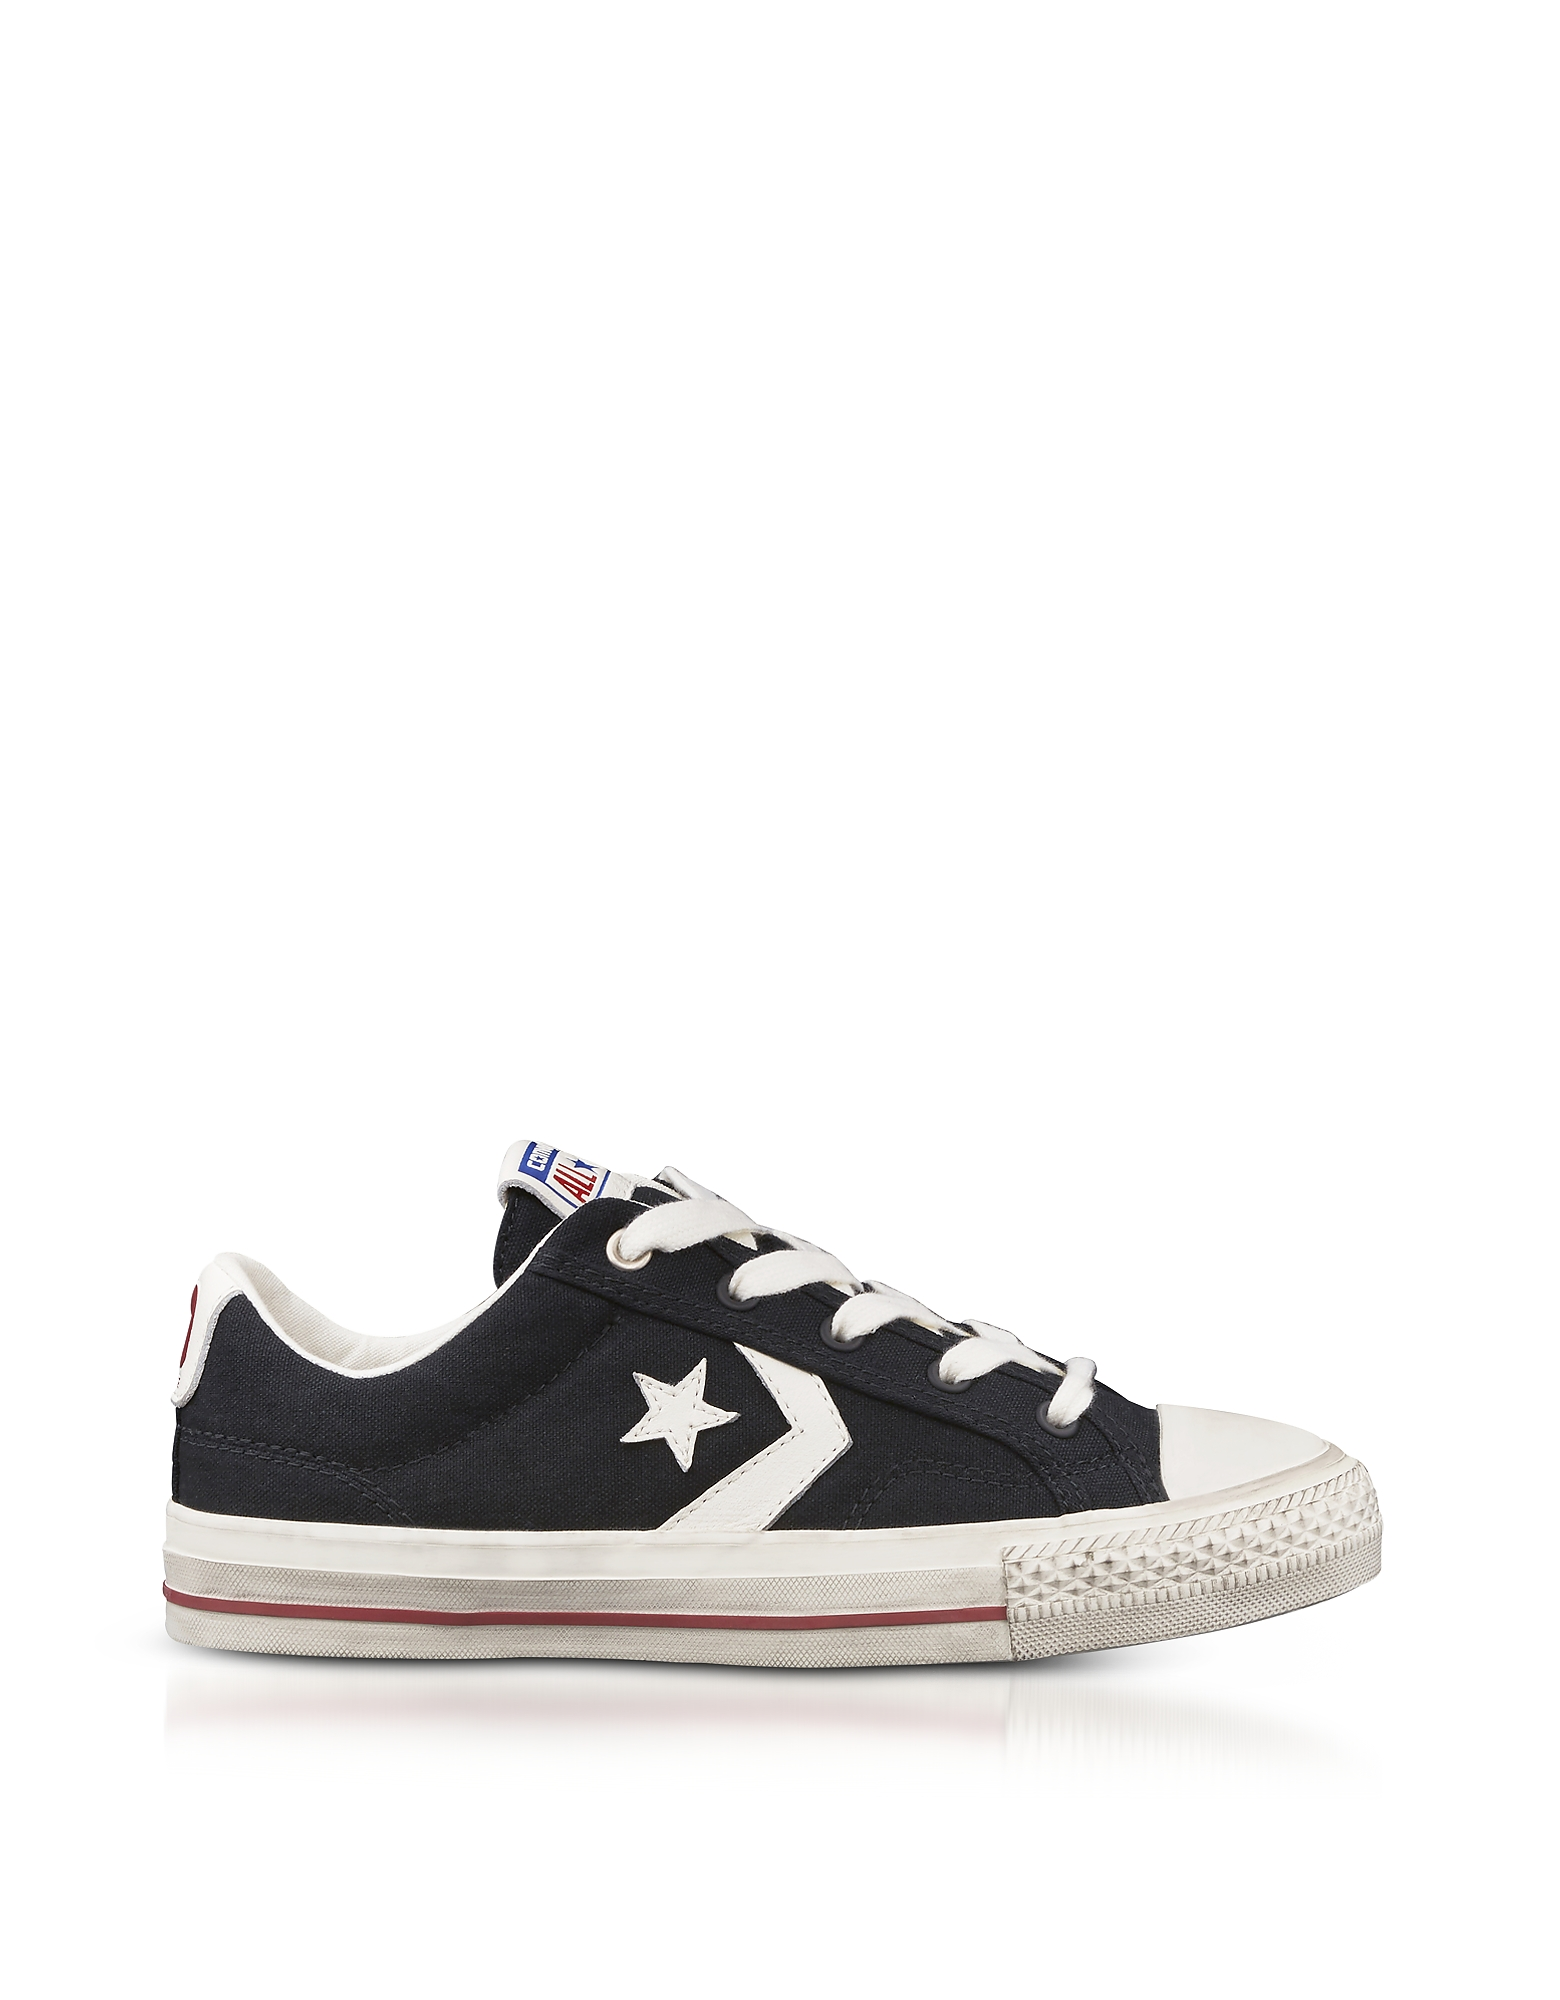 Converse Limited Edition Shoes, Black Star Player Distressed Ox Canvas Men's Sneakers